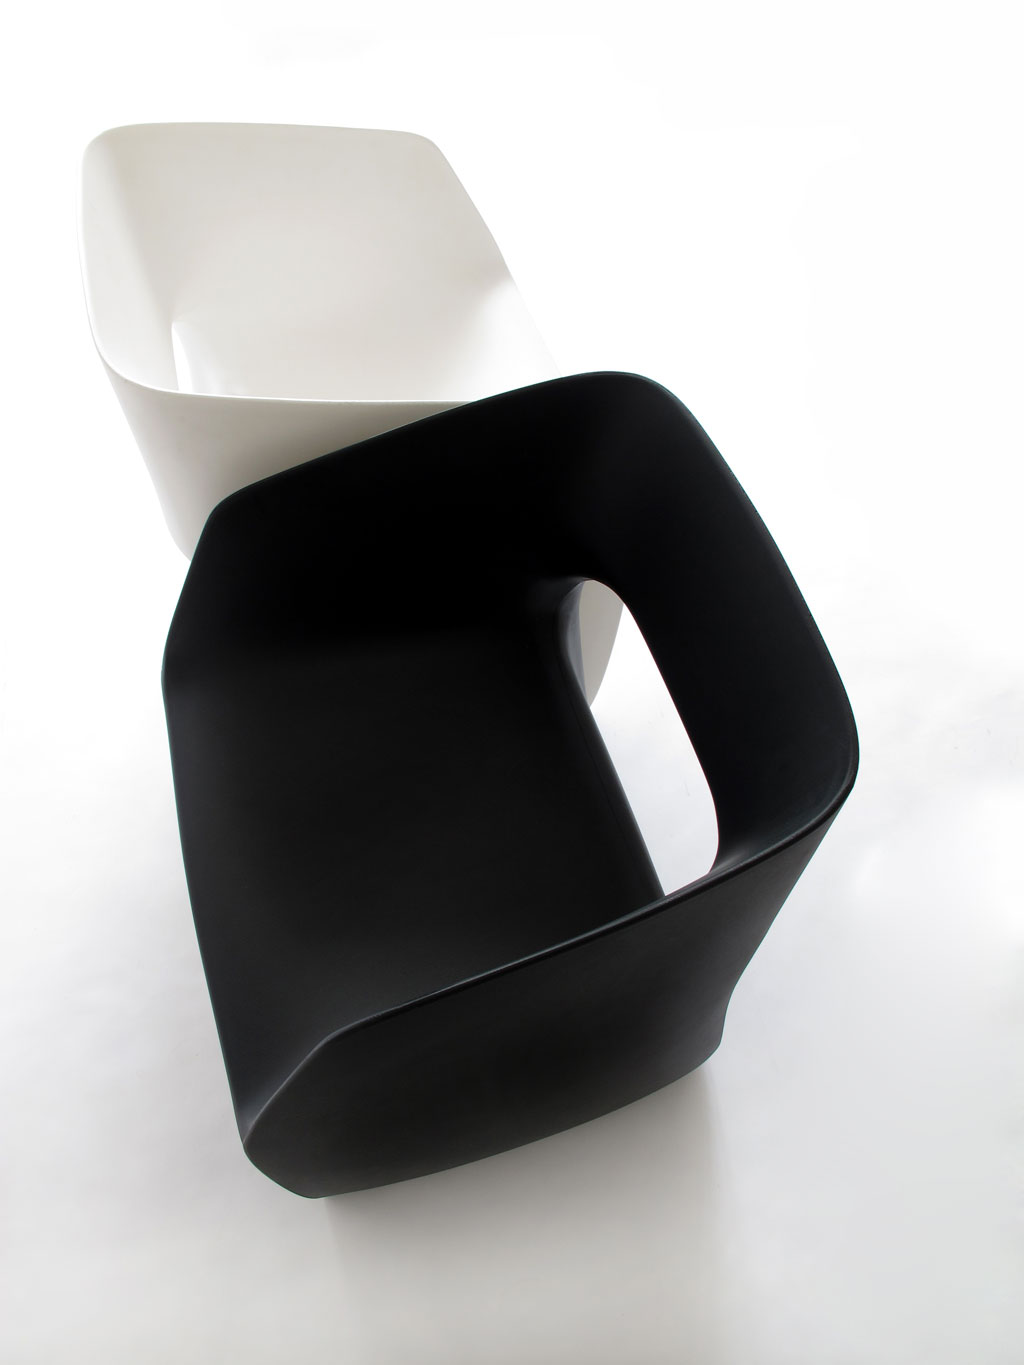 martinazua-martin-numbered-rotomoulding-armchair-chair-mobles114-m114-black-plastic-recyclable-b&w-white